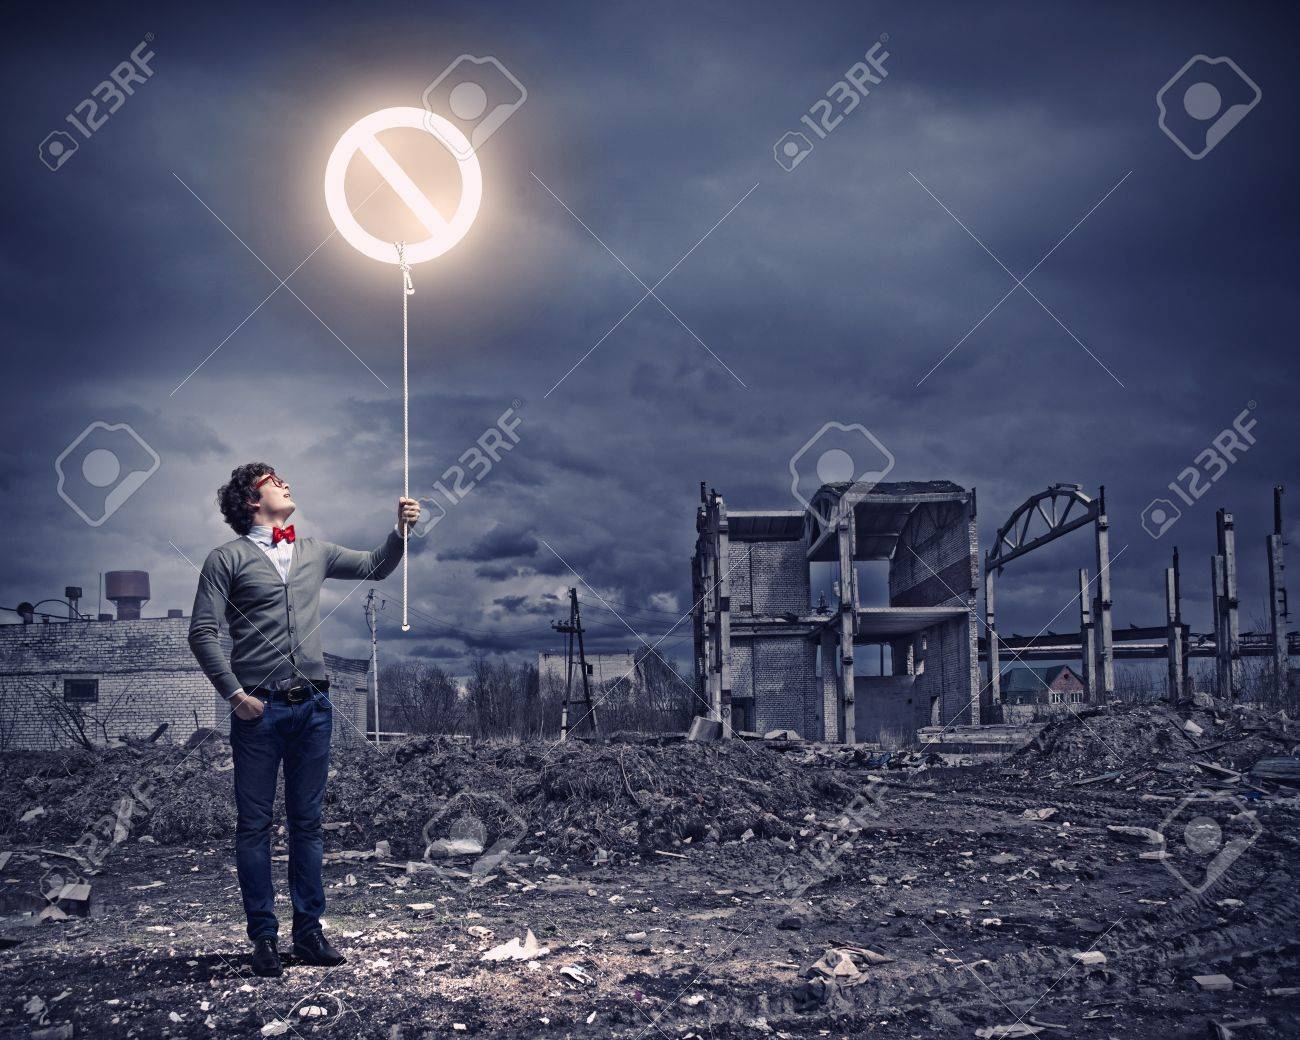 Young man and stop sign against polluted and ruined landscape Stock Photo - 21247189